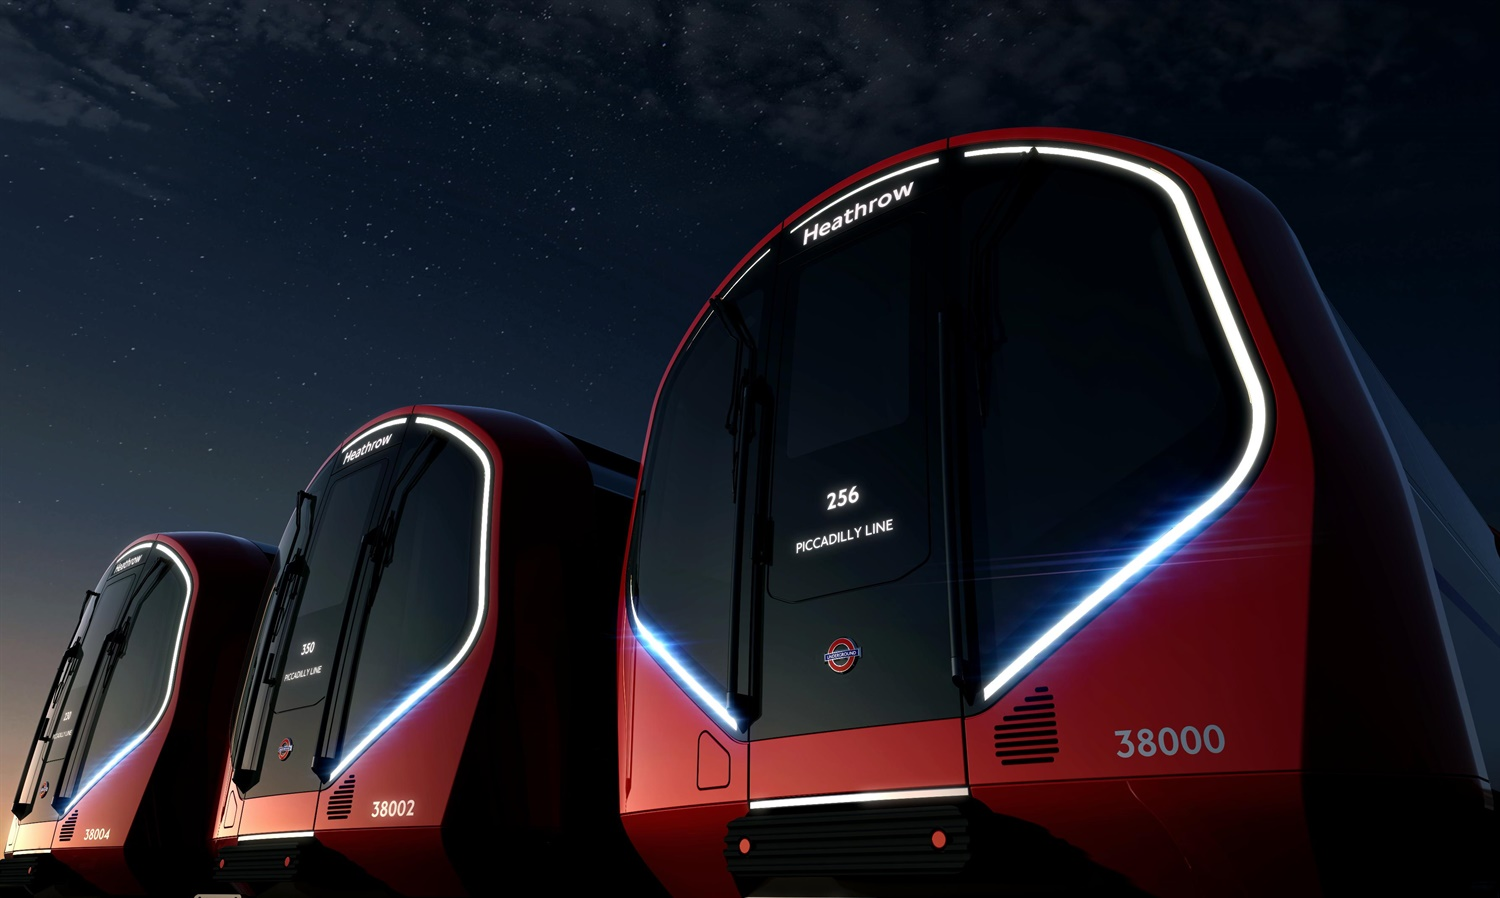 New Tube for London ITT delayed until December 2015